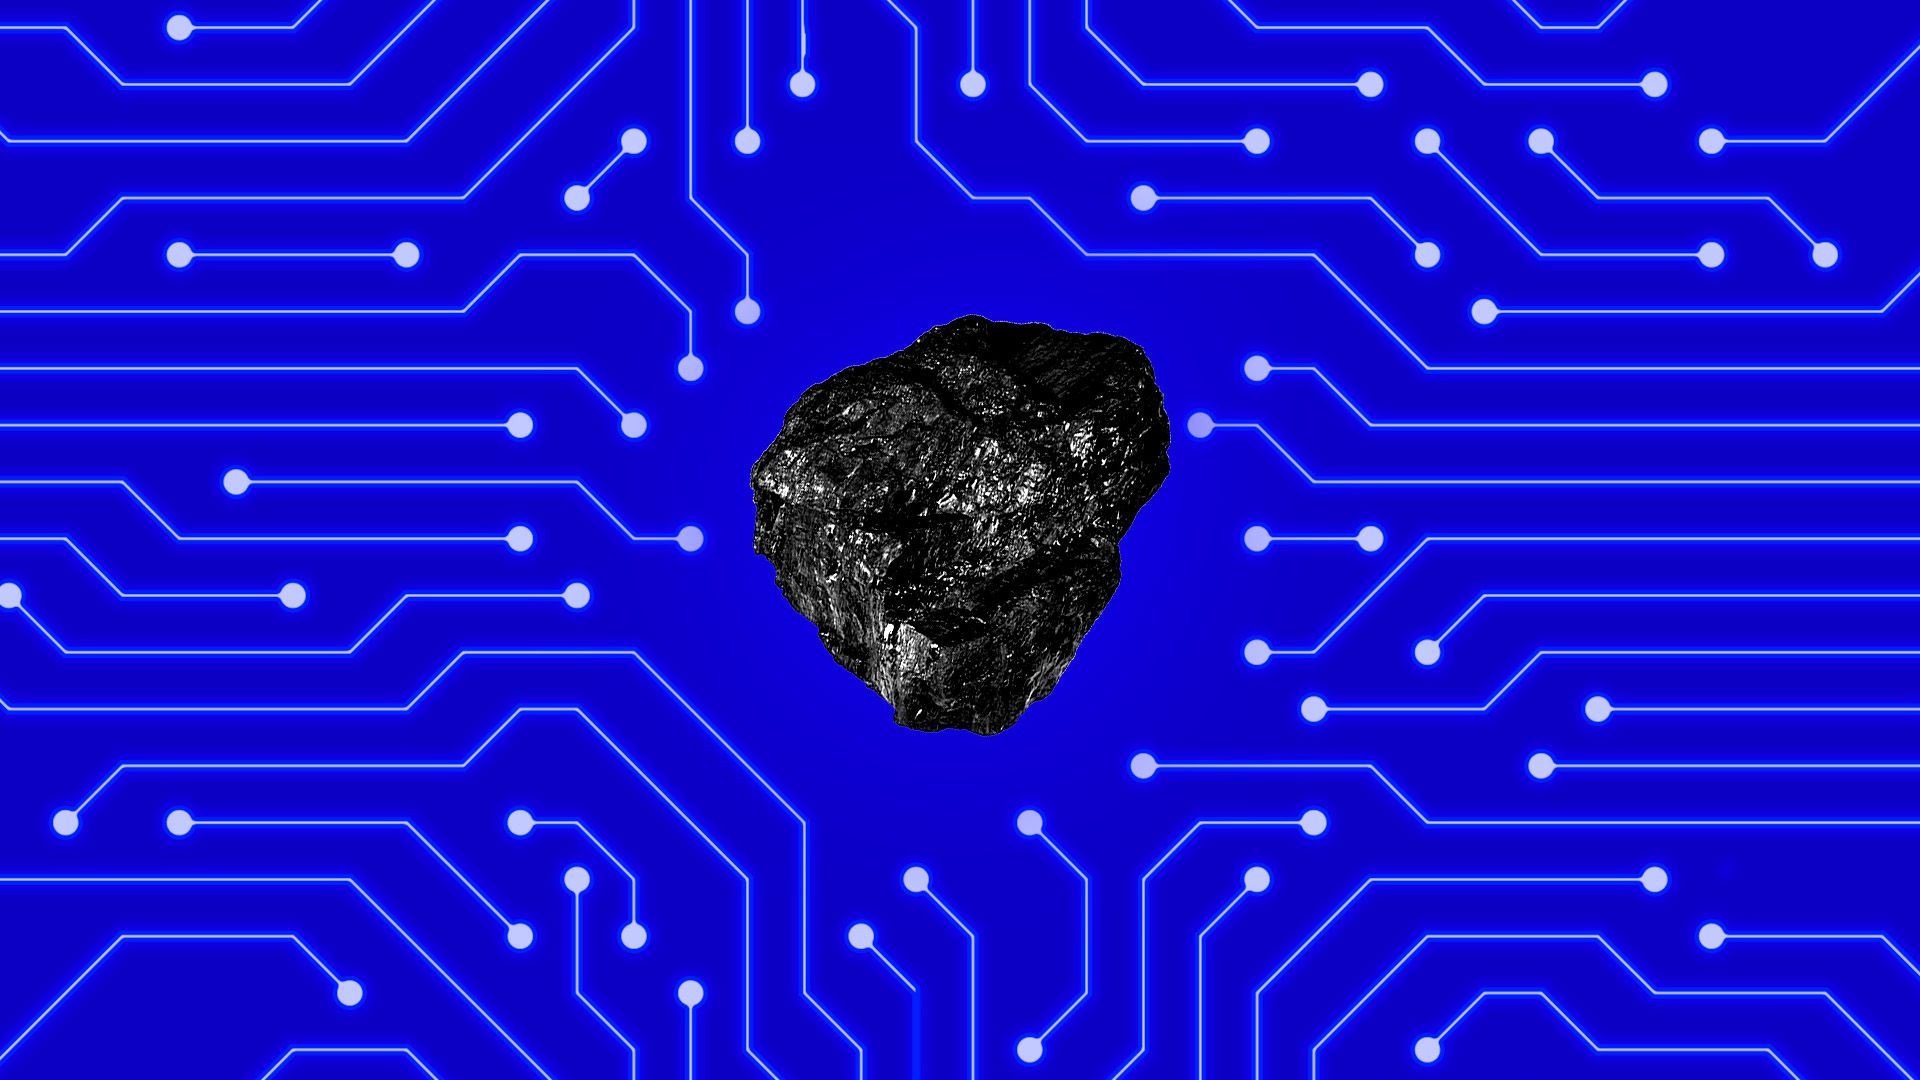 Illustration for story on whether coal will be used in high-tech products